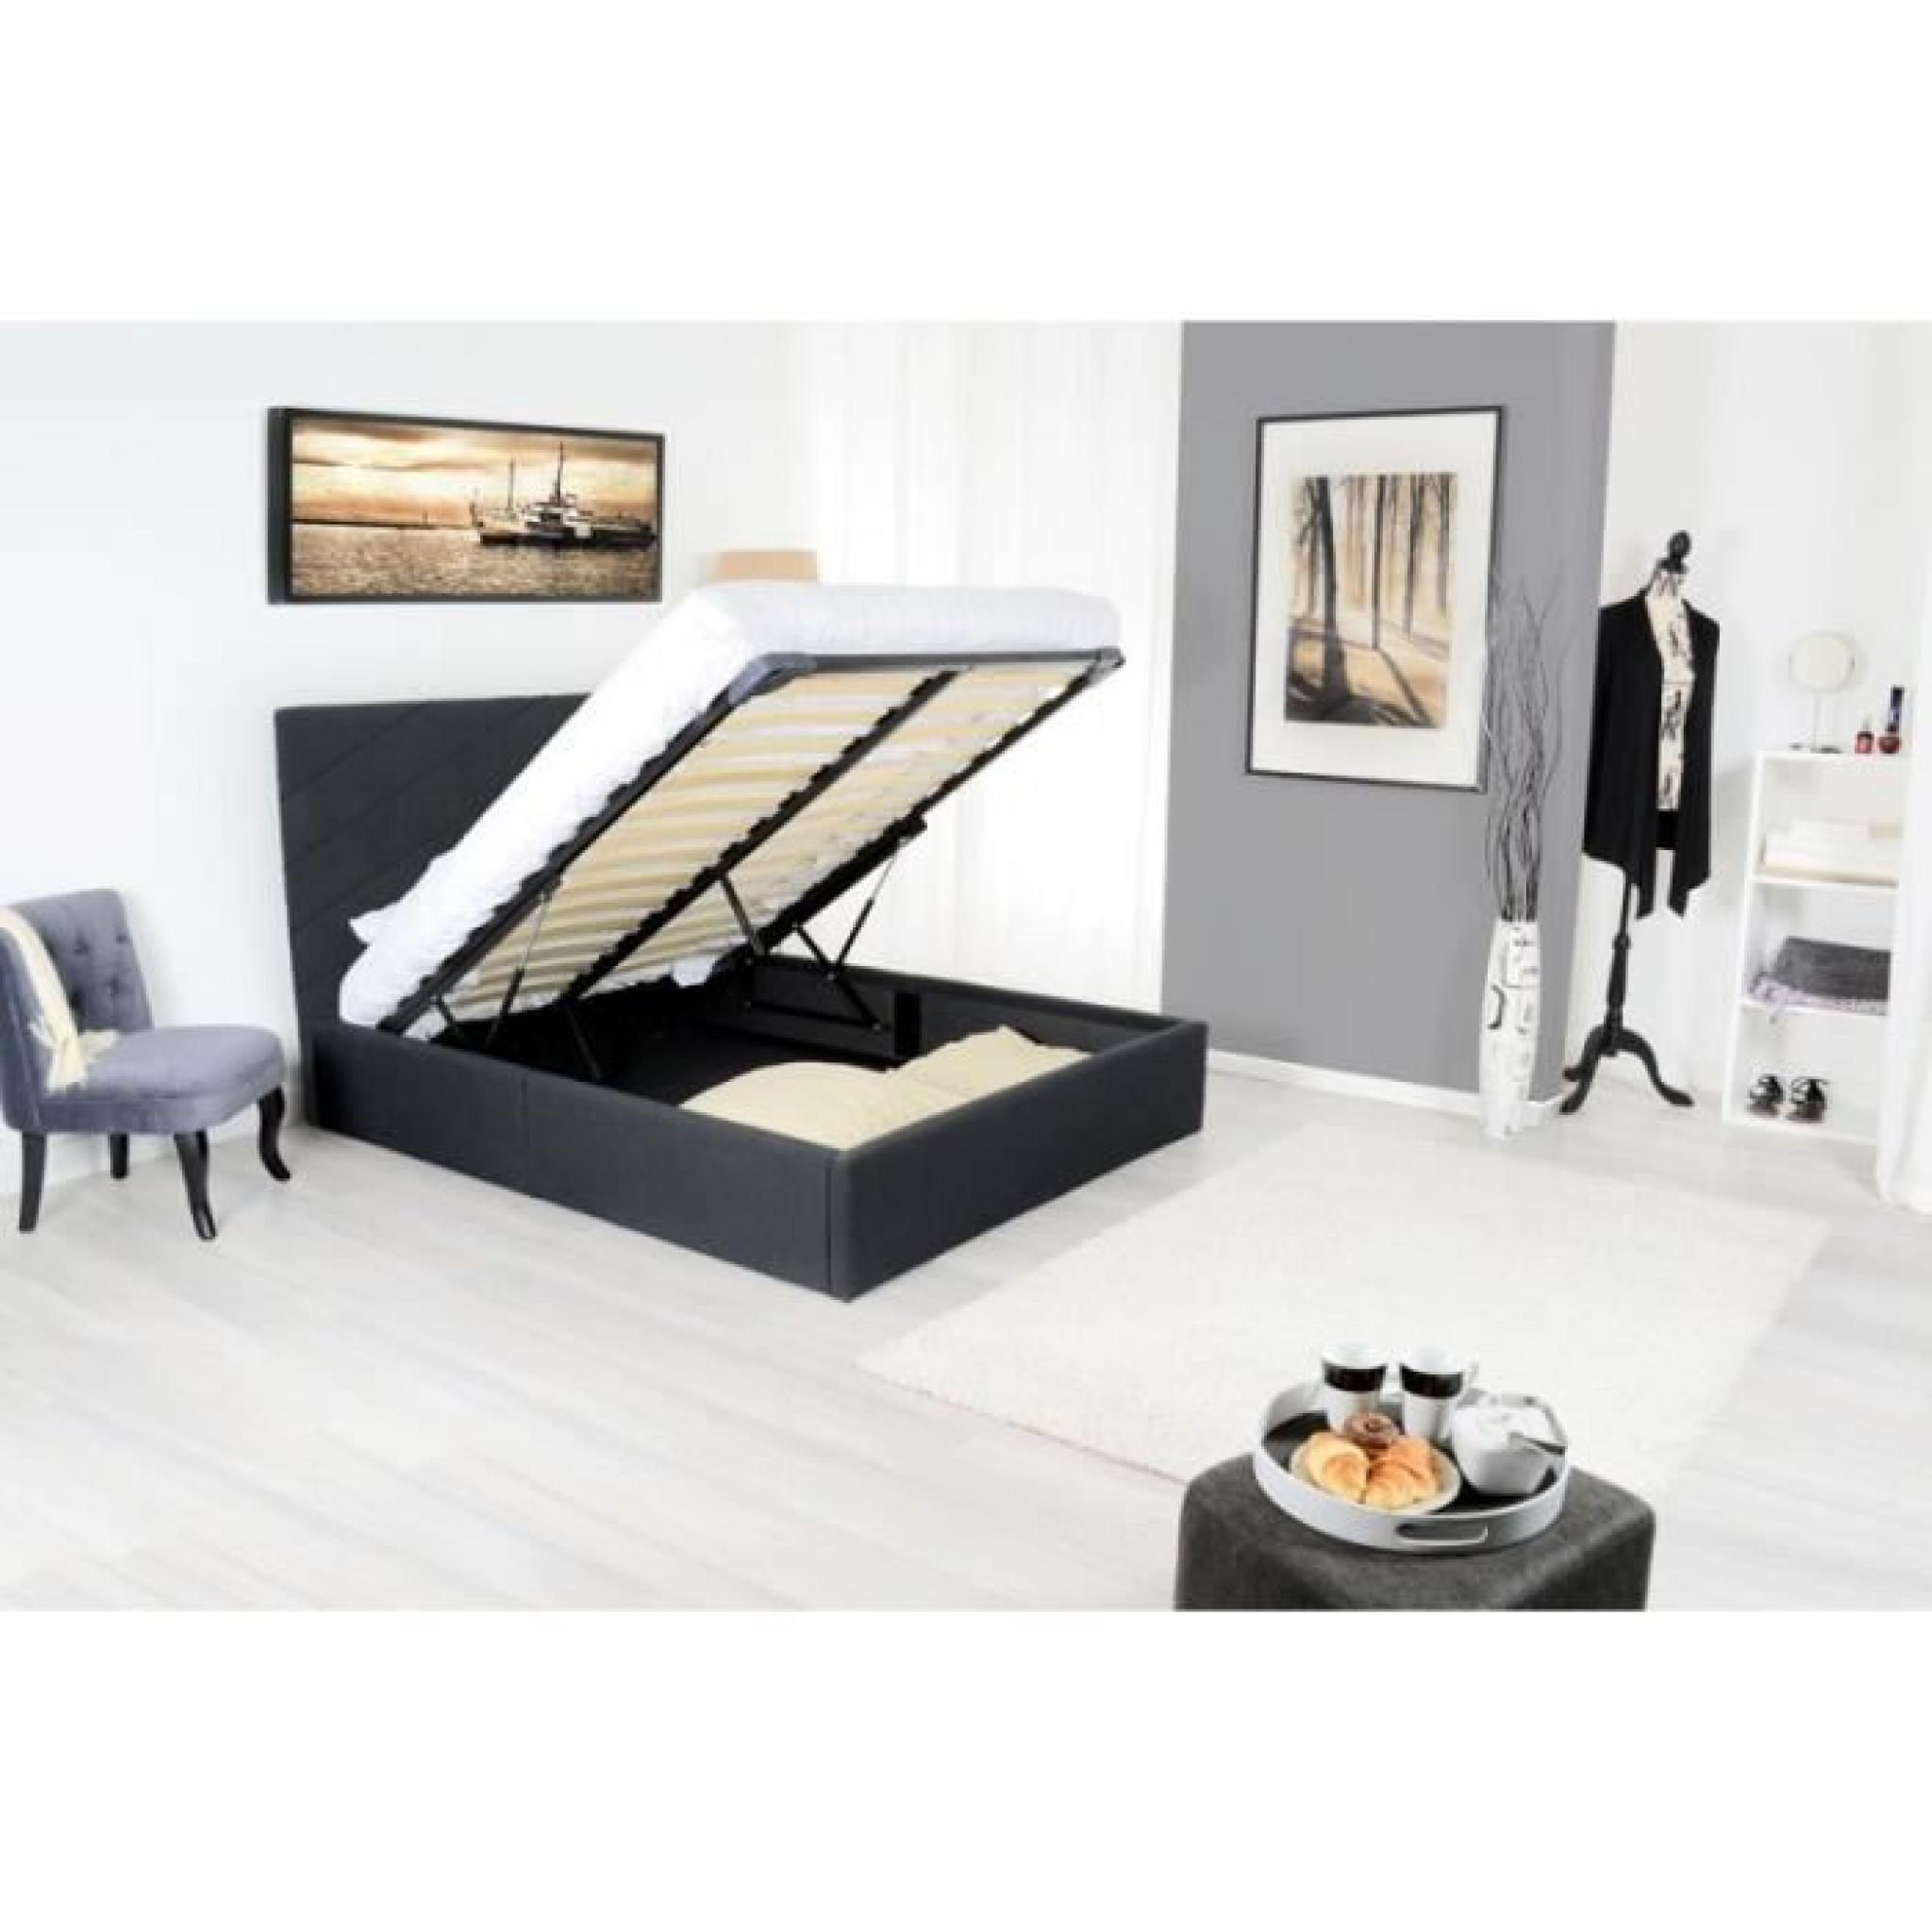 diag lit coffre adulte 160x200 cm sommier gris achat. Black Bedroom Furniture Sets. Home Design Ideas